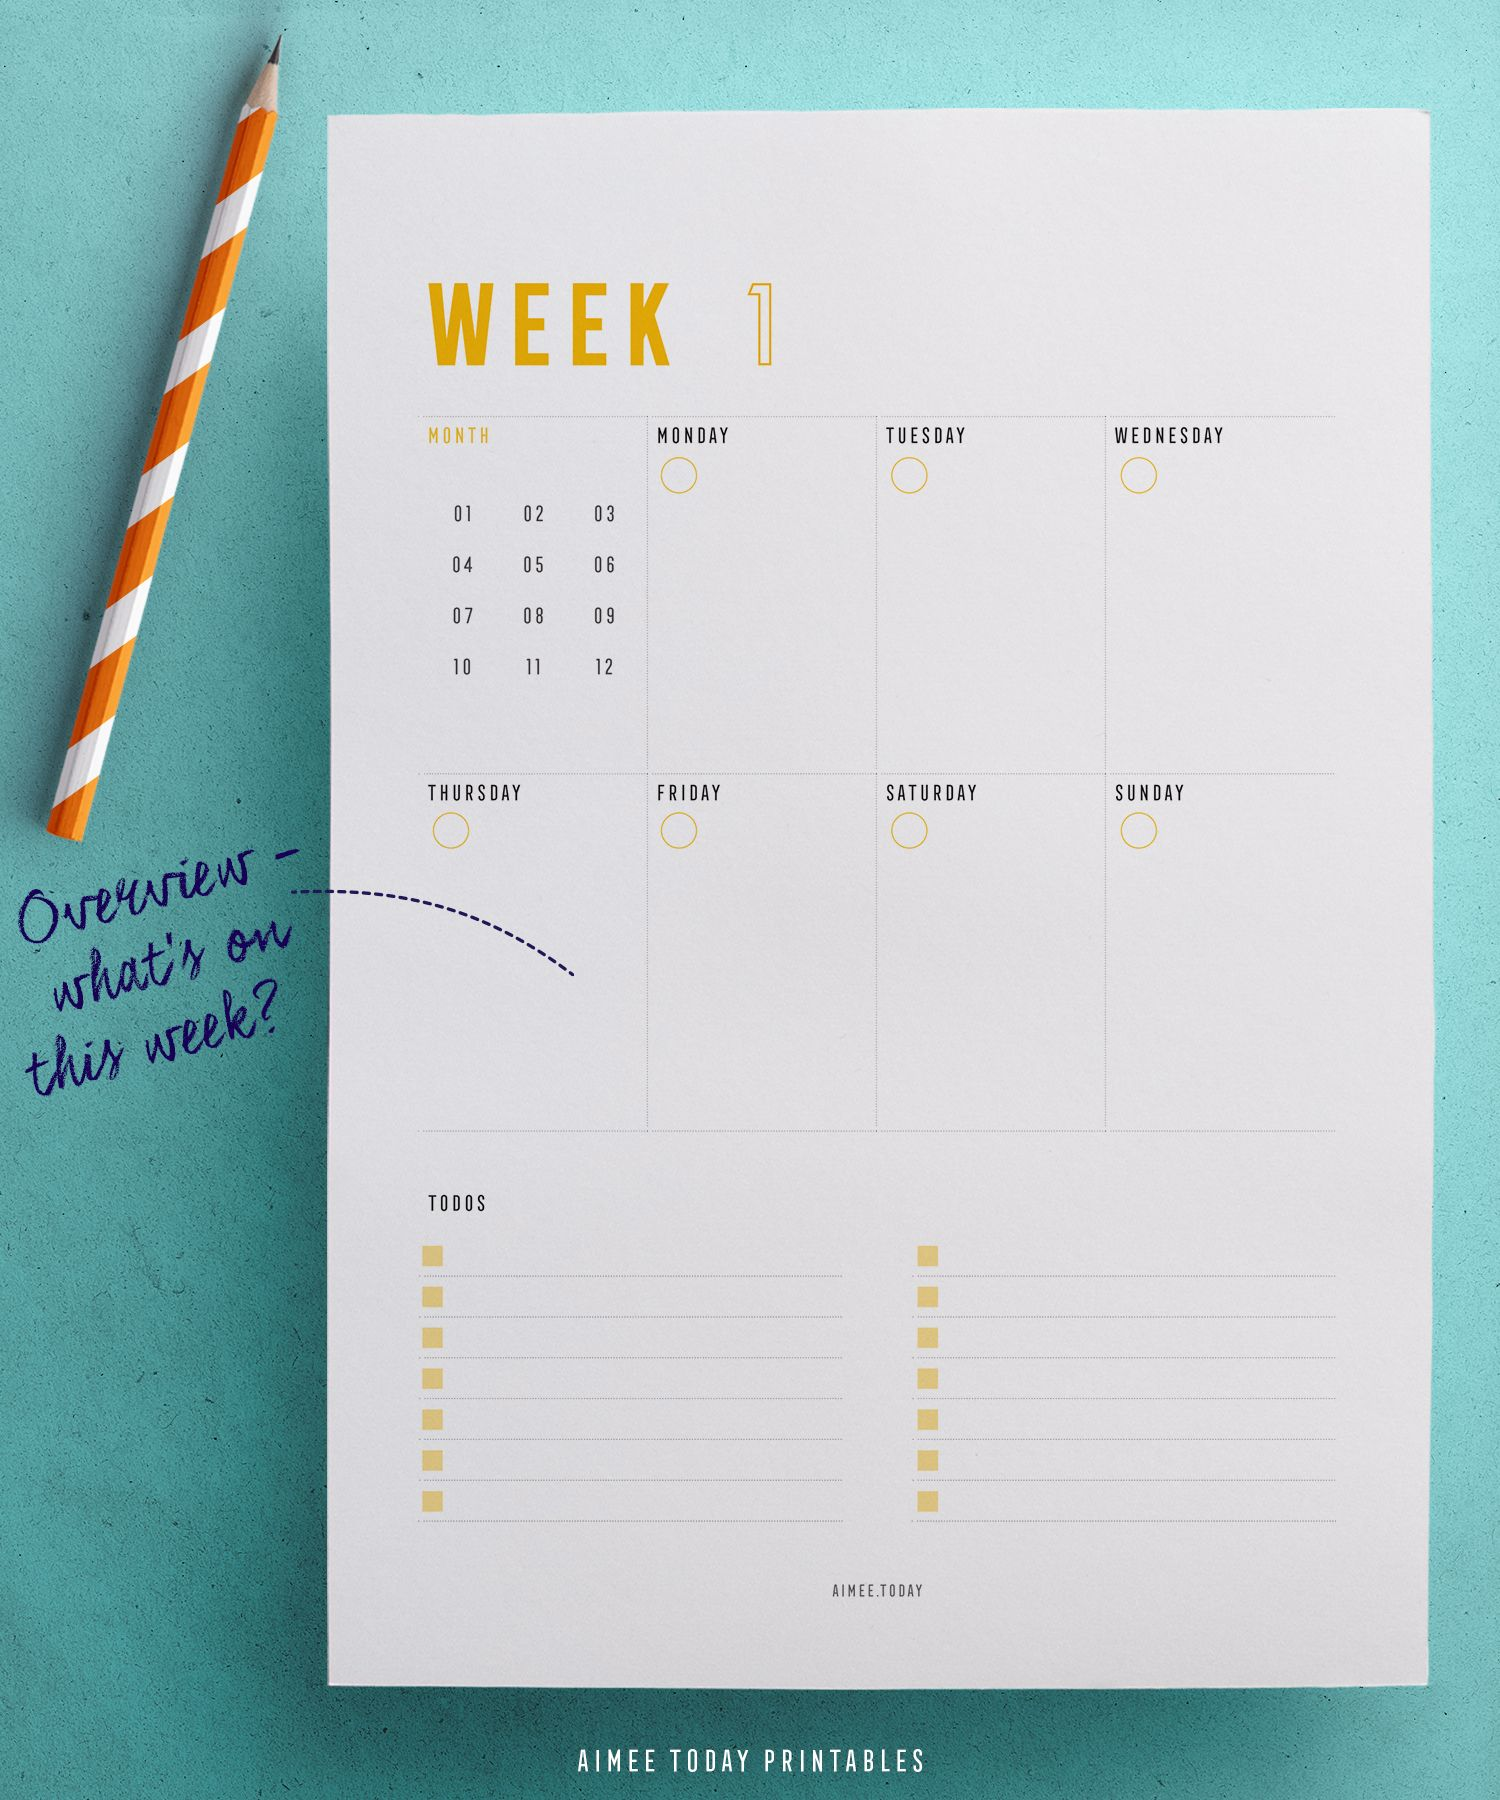 weekly planner printable with daily top 3 priorities and todos